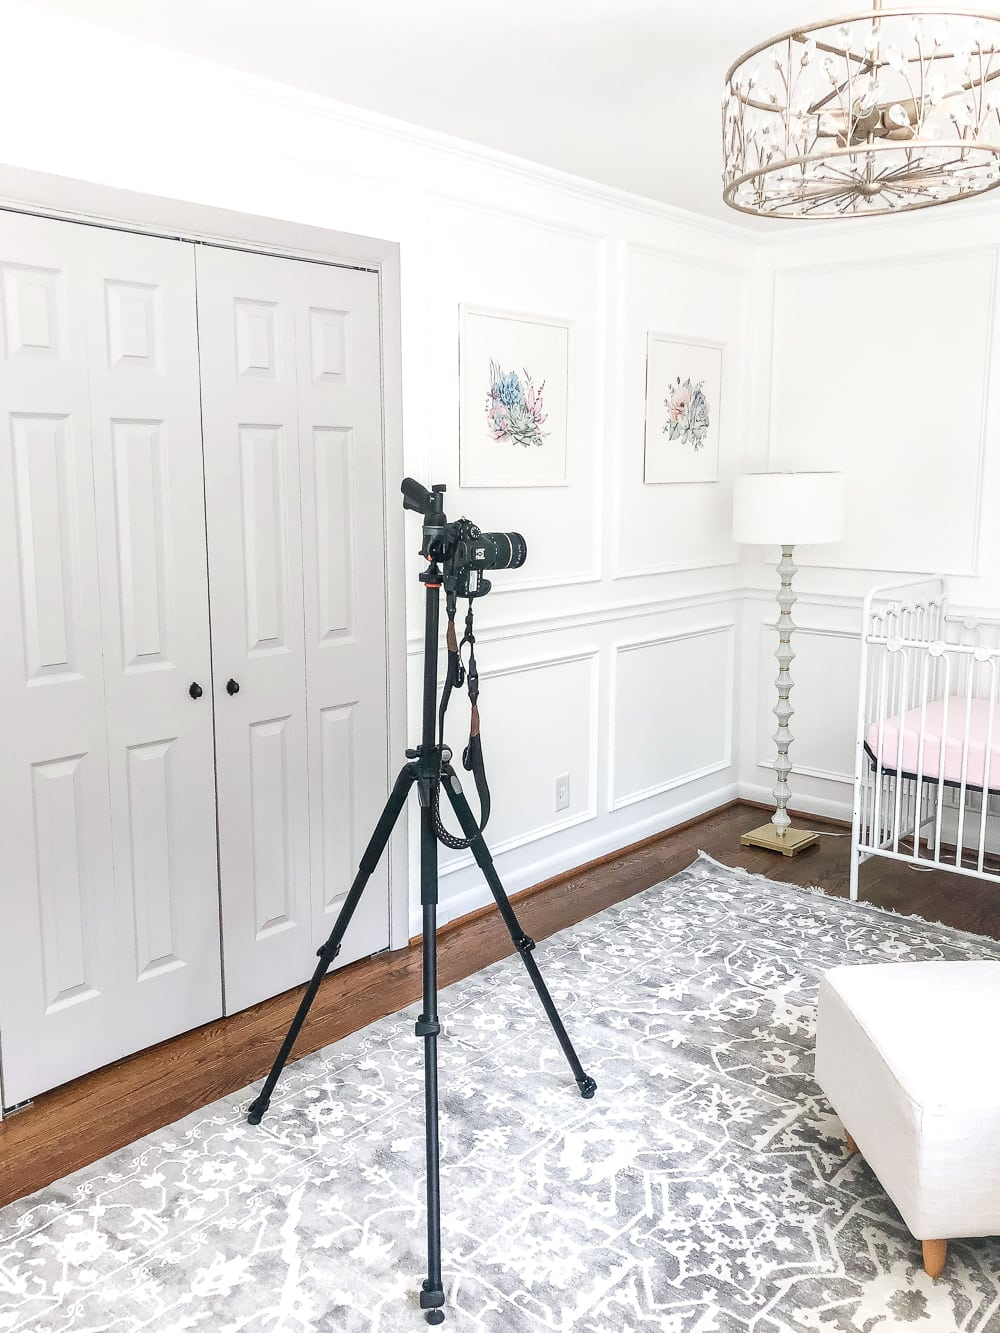 The best course for teaching you how to photograph interiors and jumpstart your career as a blogger, interior designer, or real estate photographer. #blogphotography #photography #improvephotography #photographercourse #photographytips #photographytricks